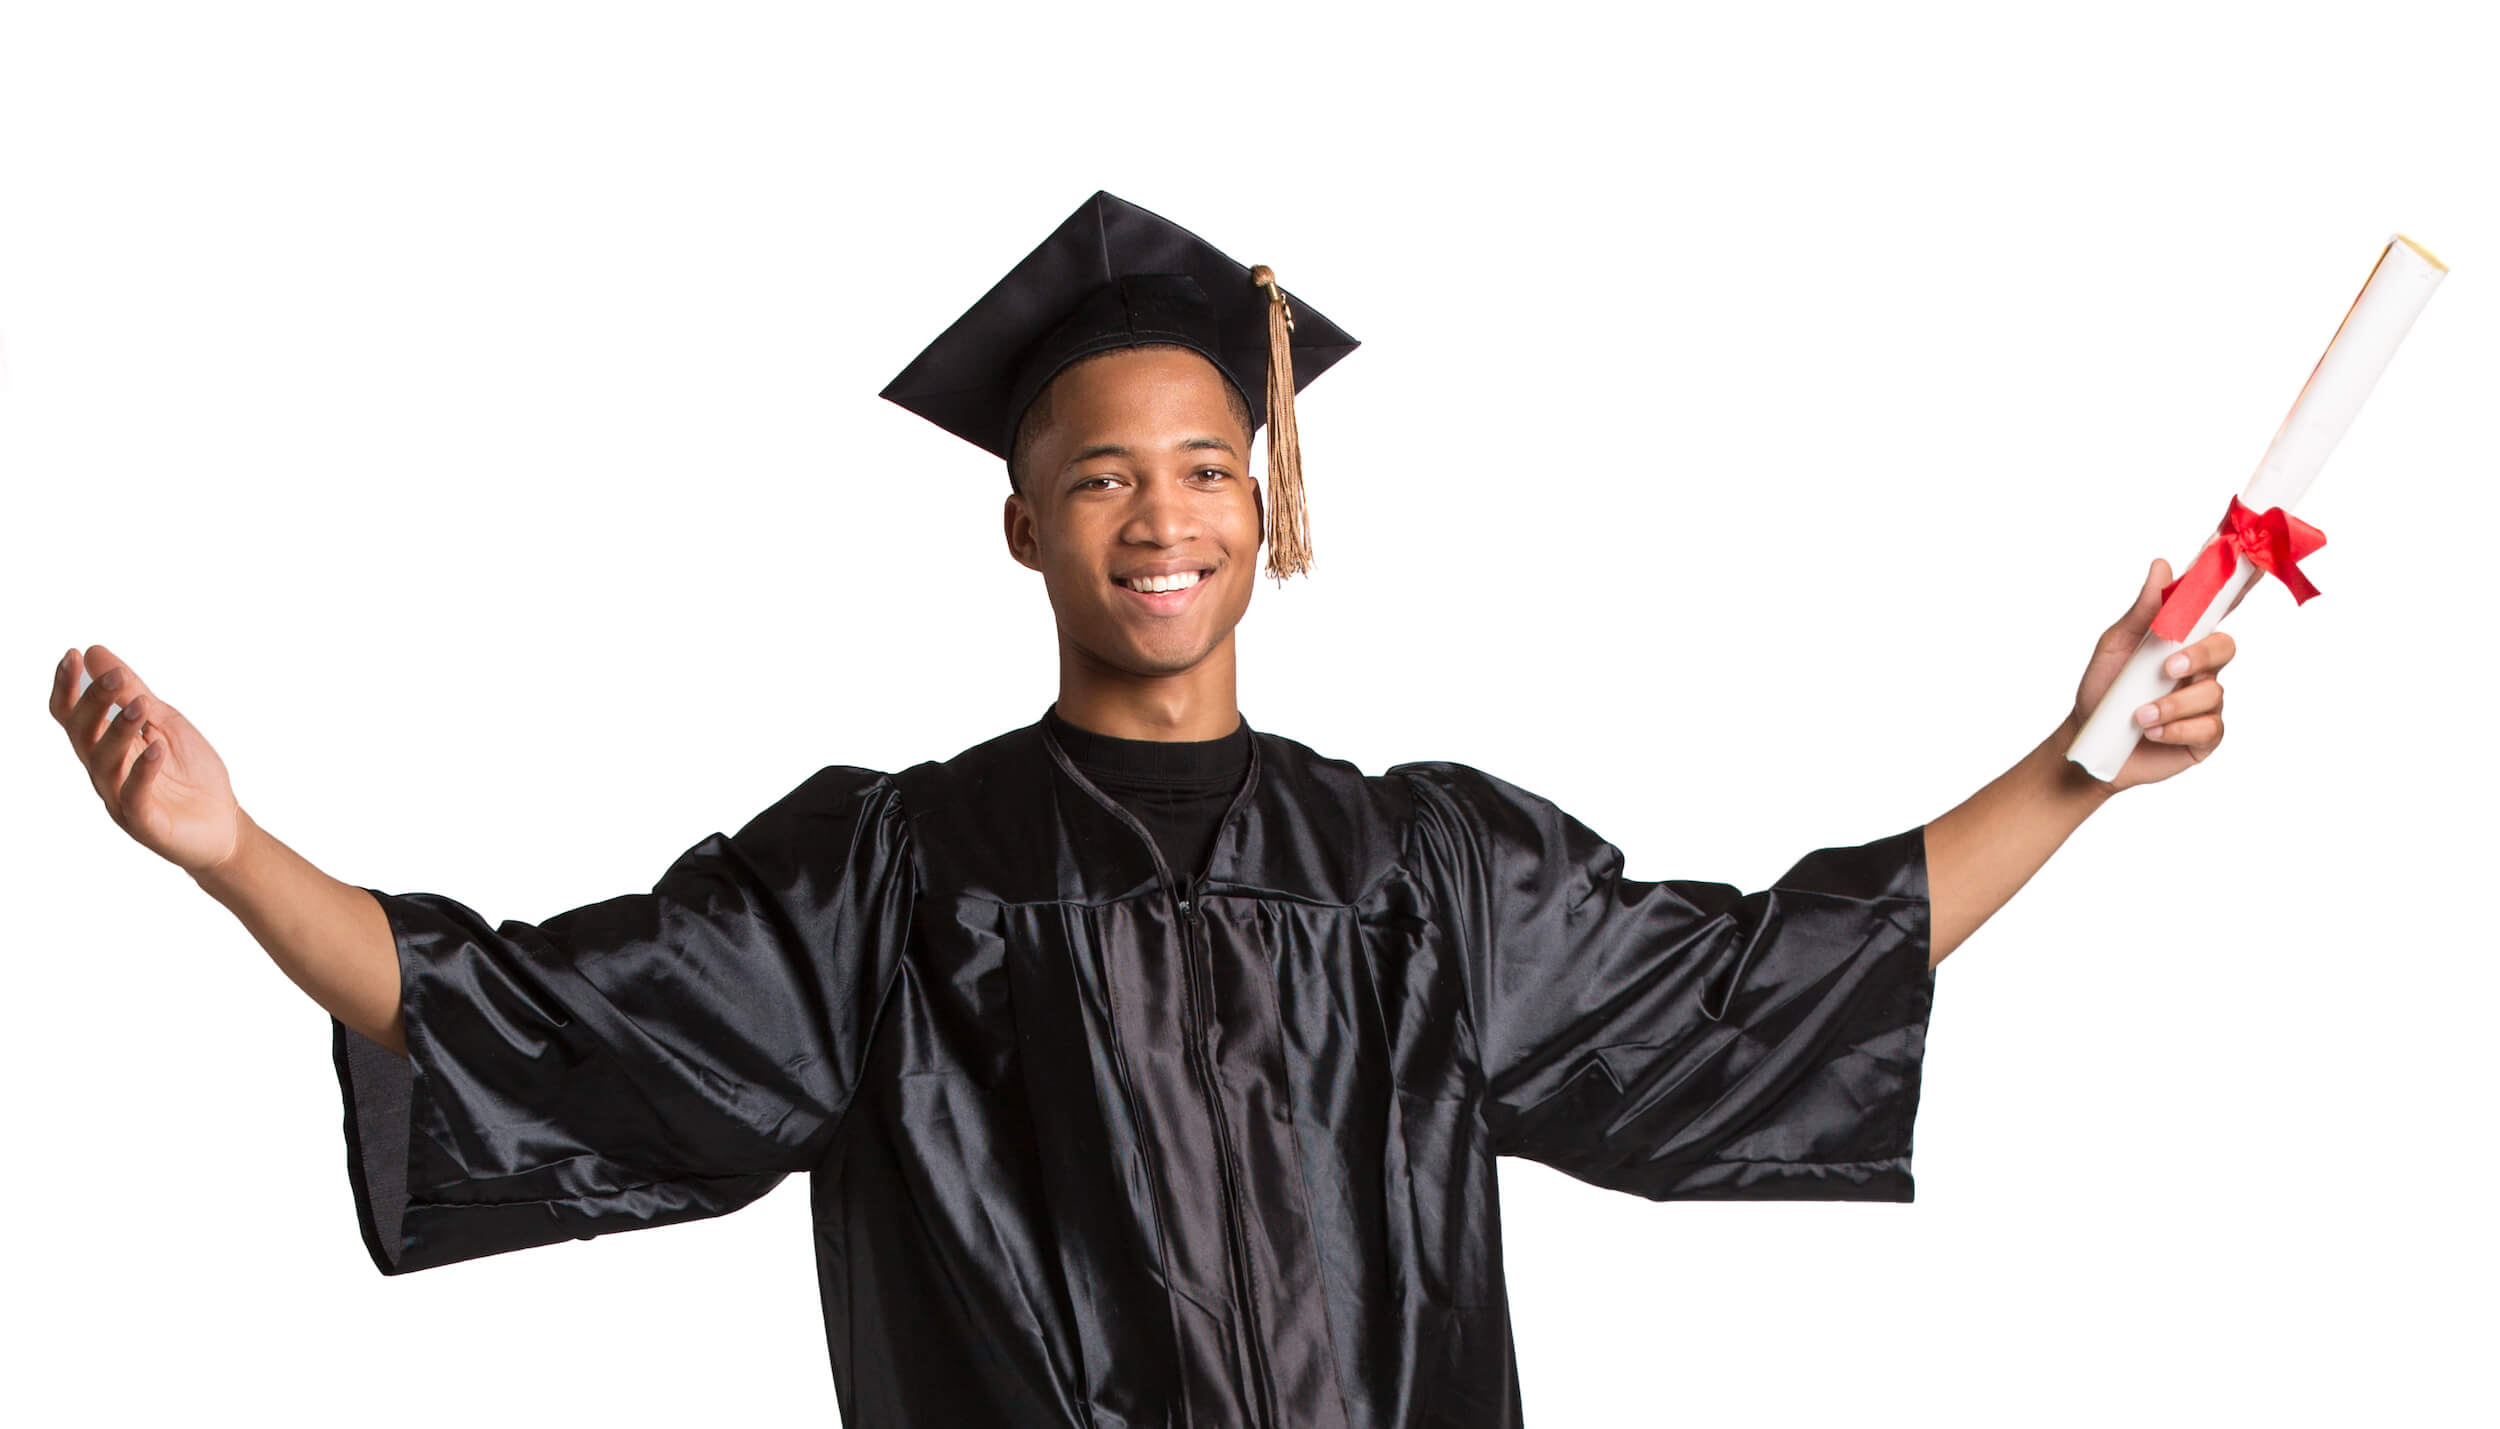 Excited young African American male student holding graduation certificate